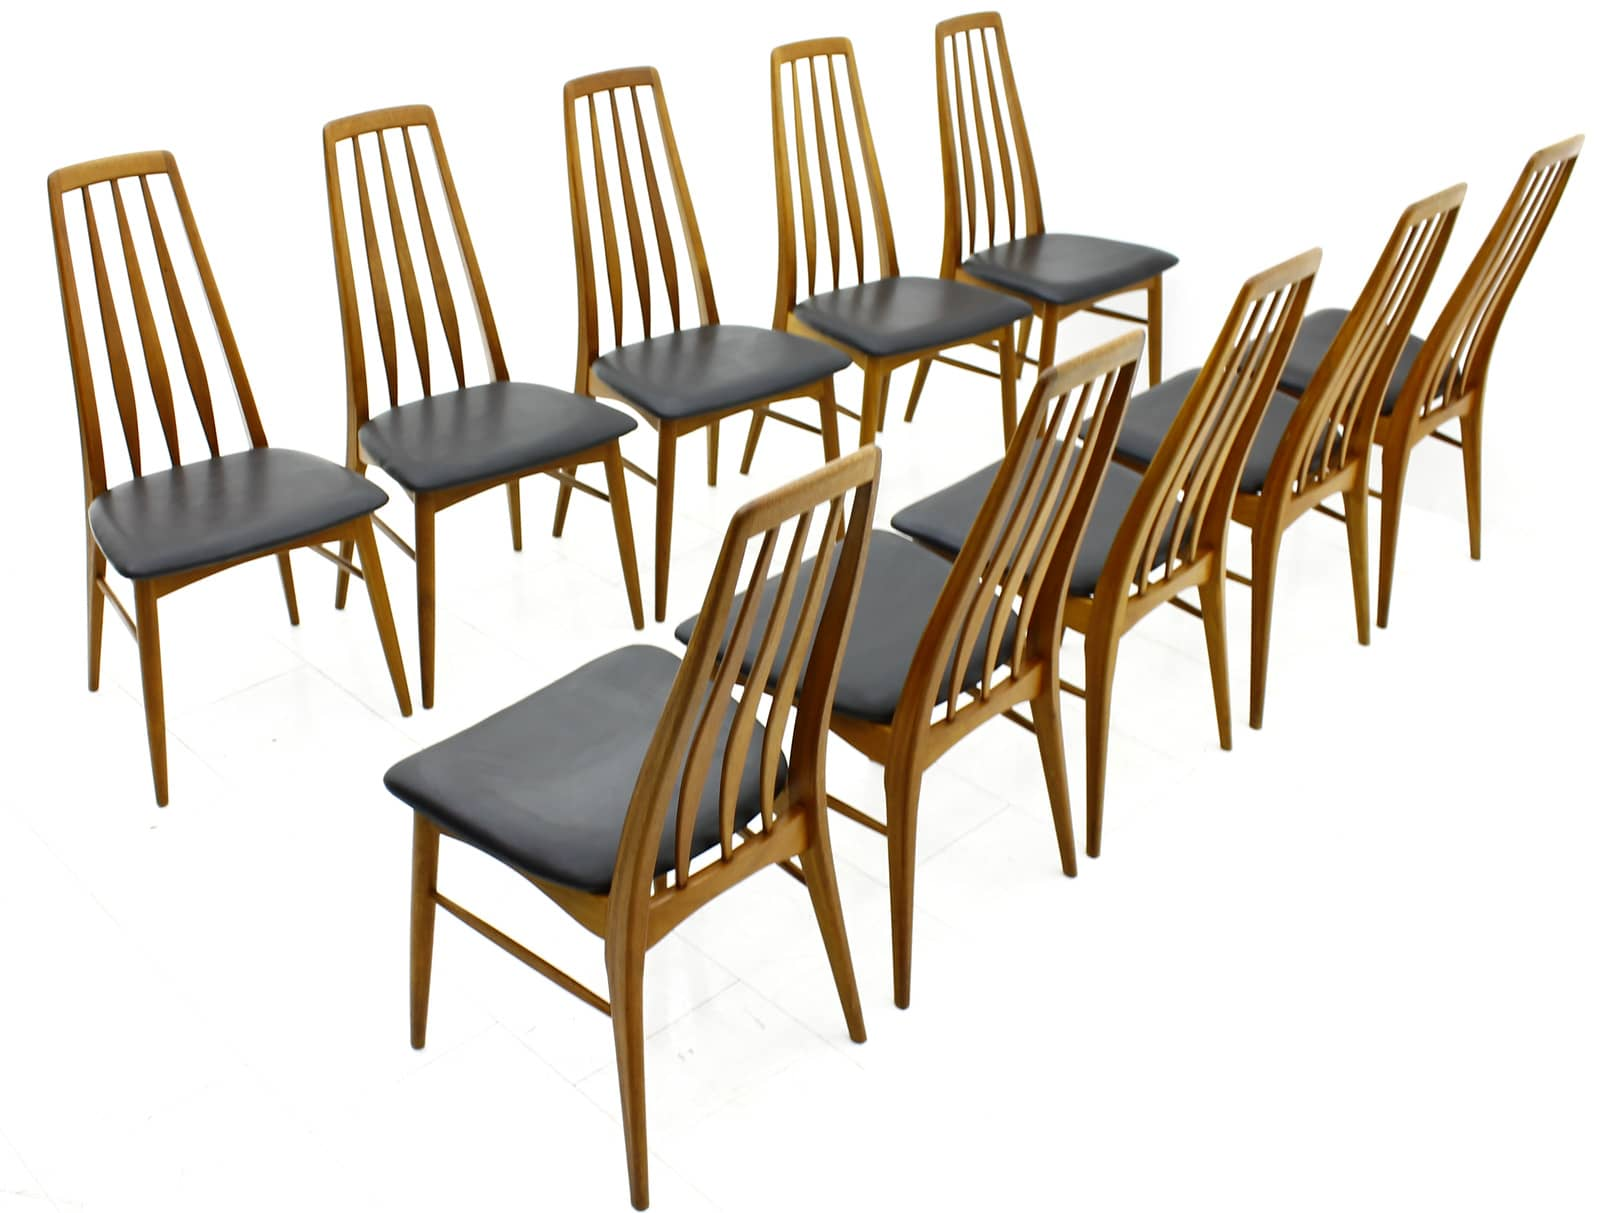 10 x Danish Dining Chairs, Teak & Leather, Niels Koefoed